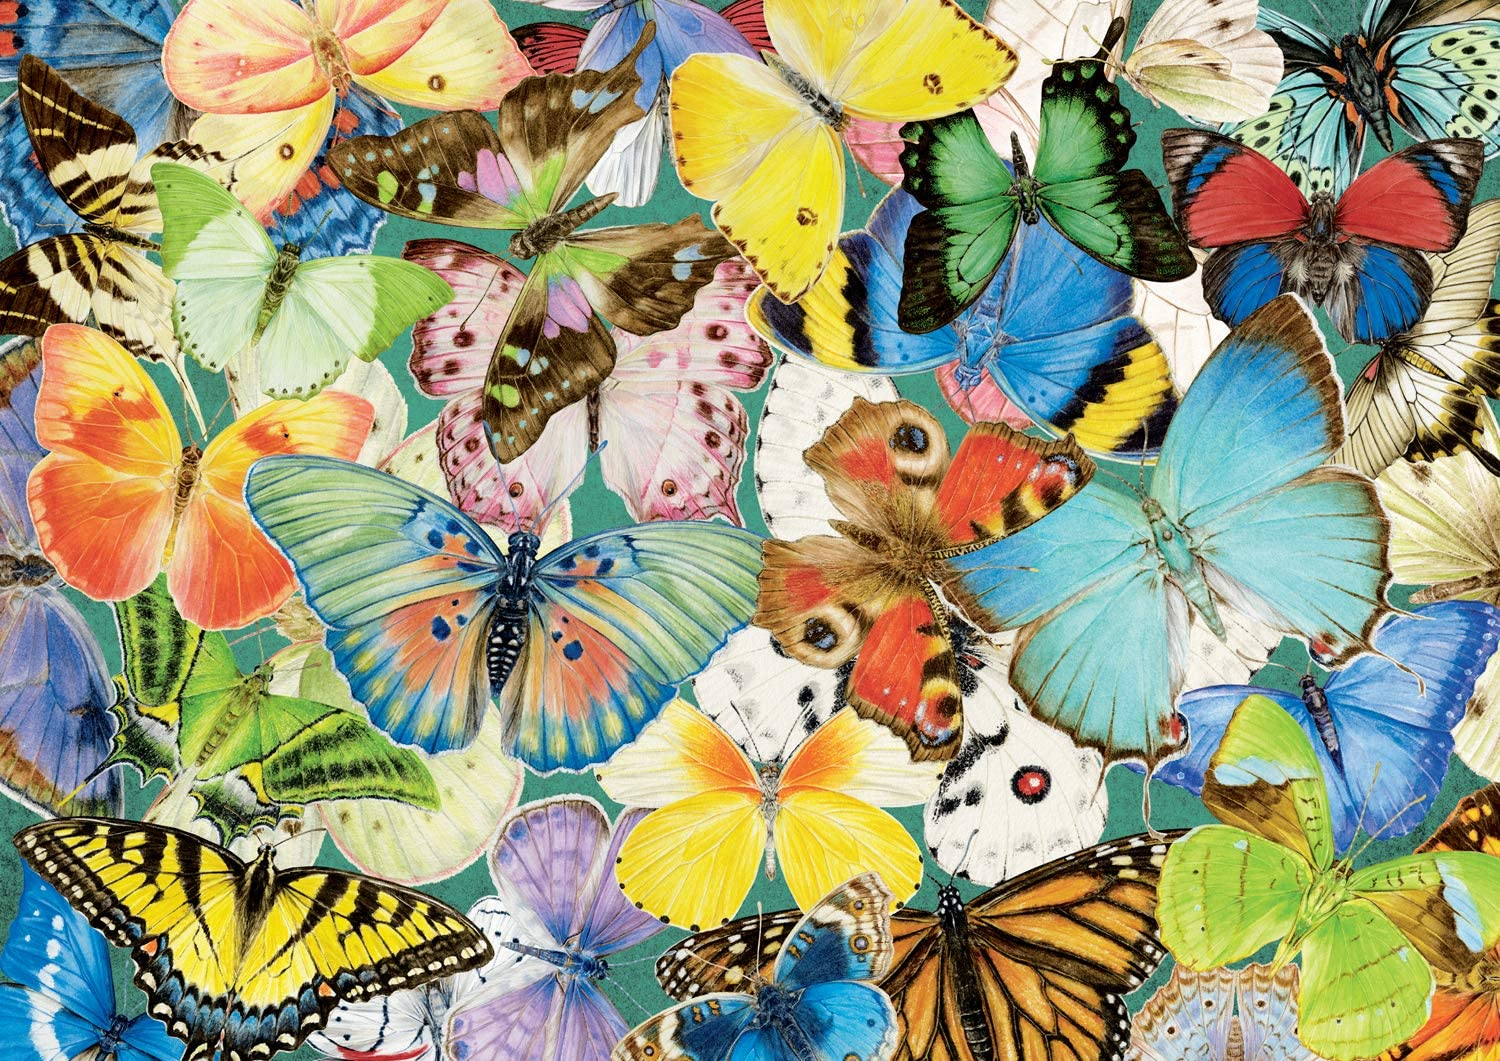 Mudpuppy Butterflies of North America 500 Piece Family Jigsaw Puzzle Butterfly Puzzle with Recognizable Butterflies from Around North America